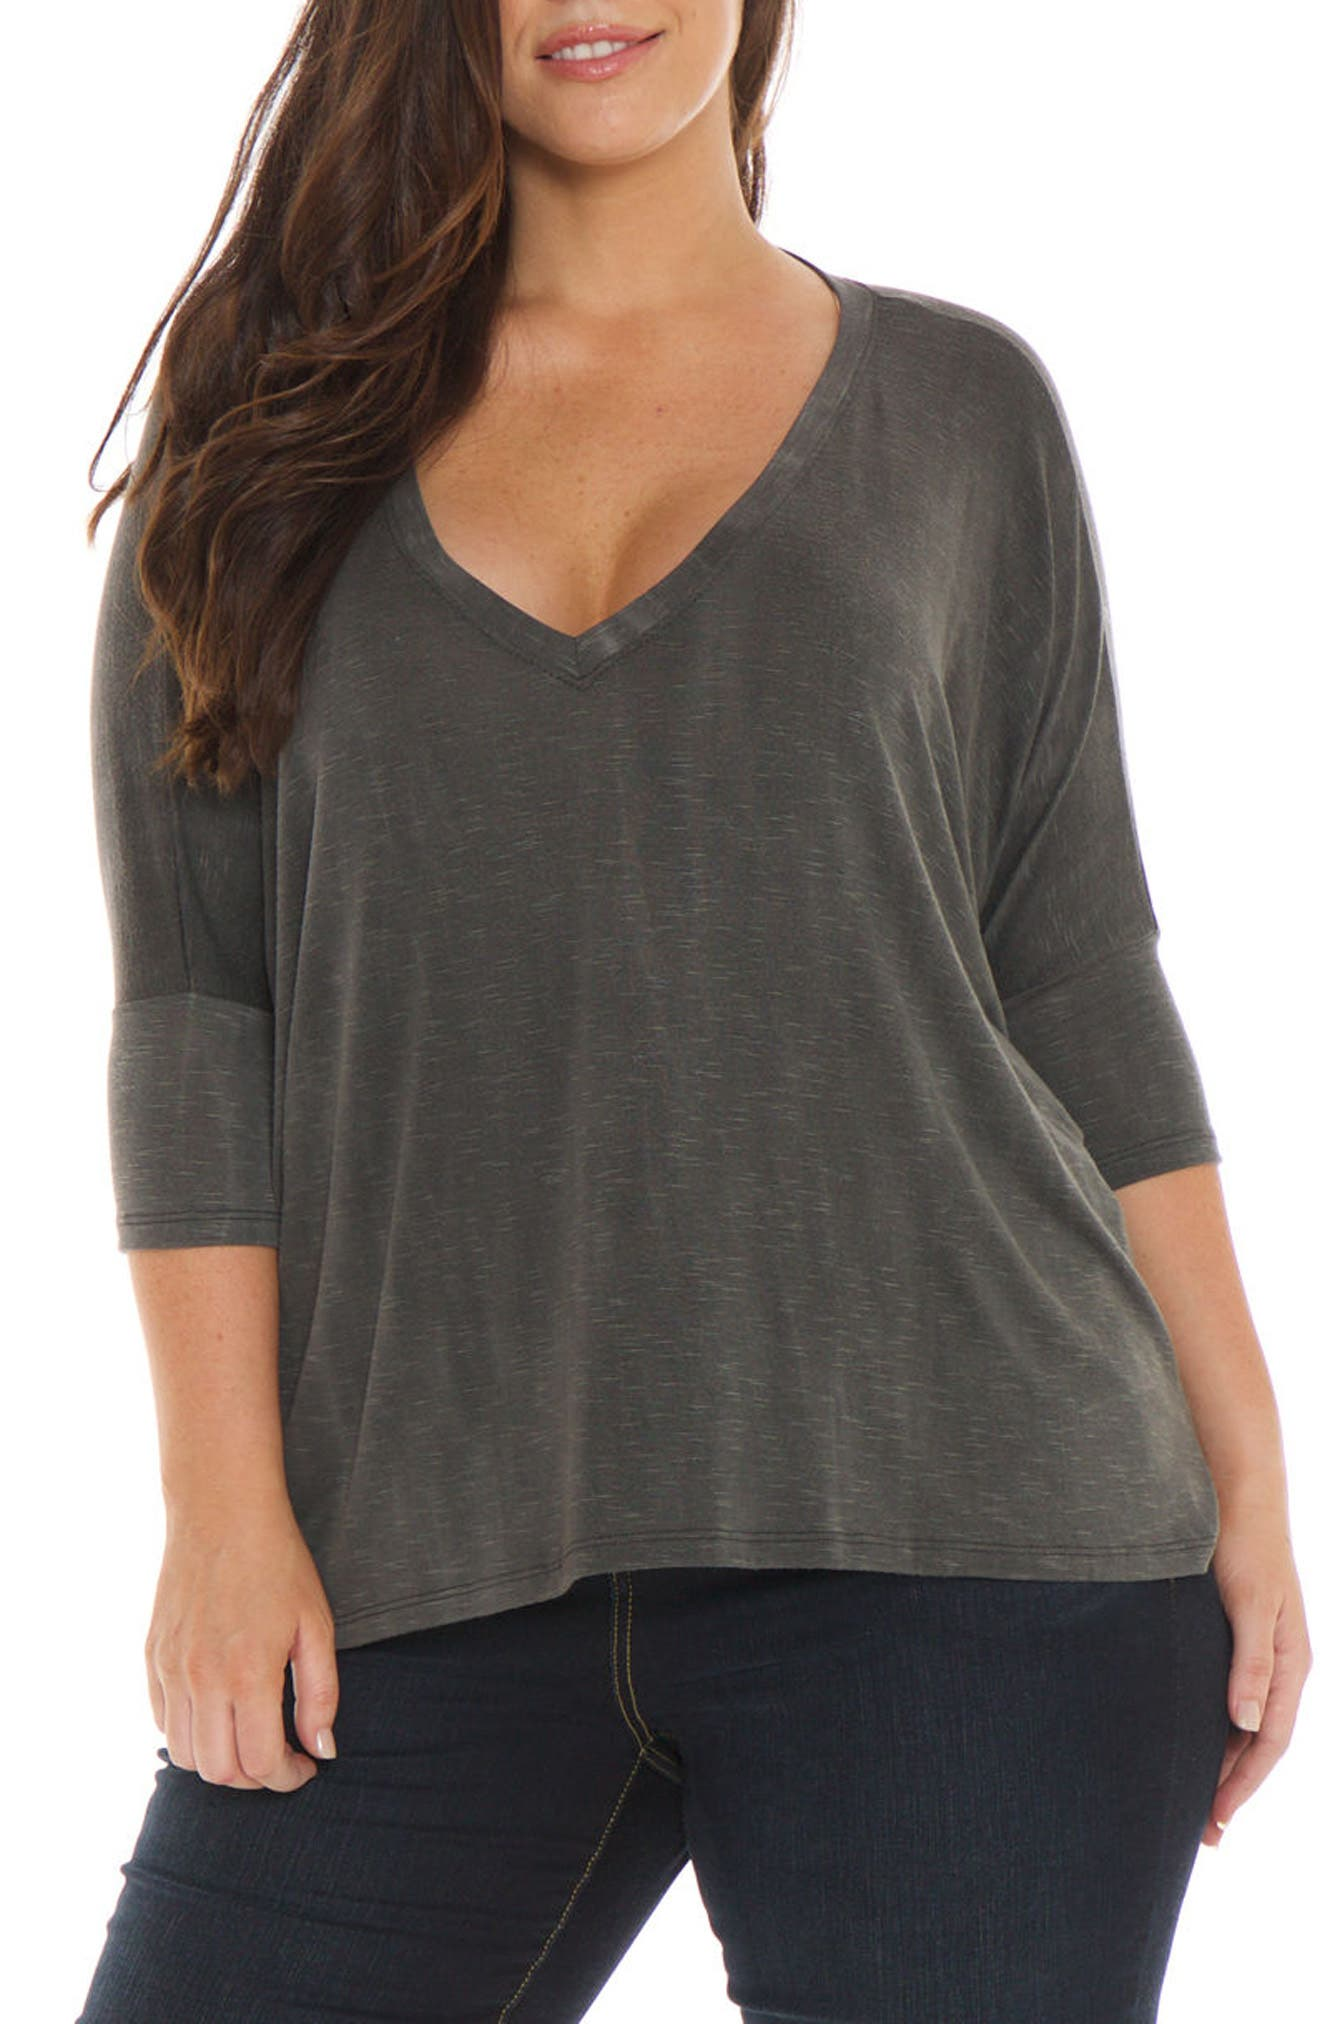 SLINK Jeans Oversized V-Neck Top (Plus Size)